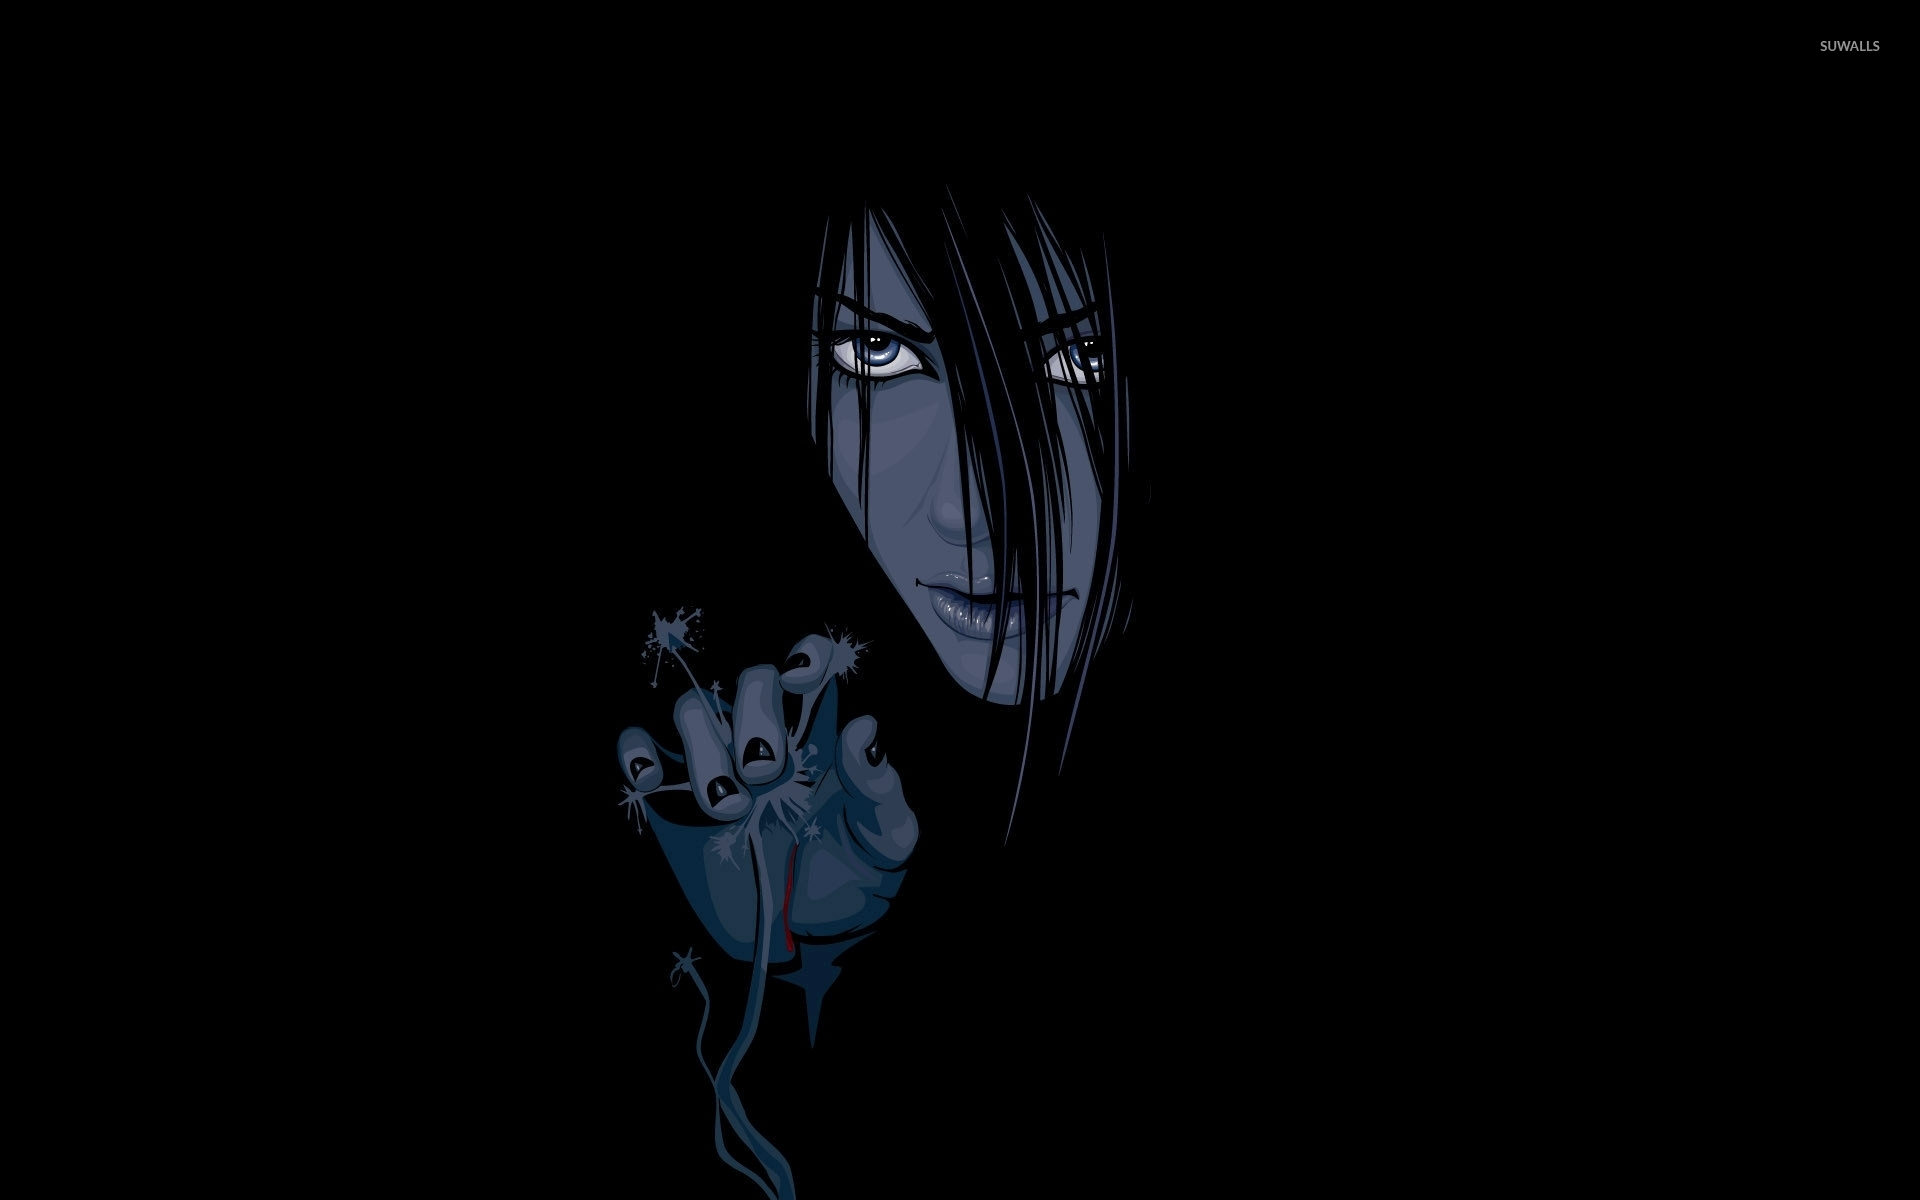 Black And White Gothic Wallpaper Orochimaru Appearingfrom The Darkness Naruto Wallpaper